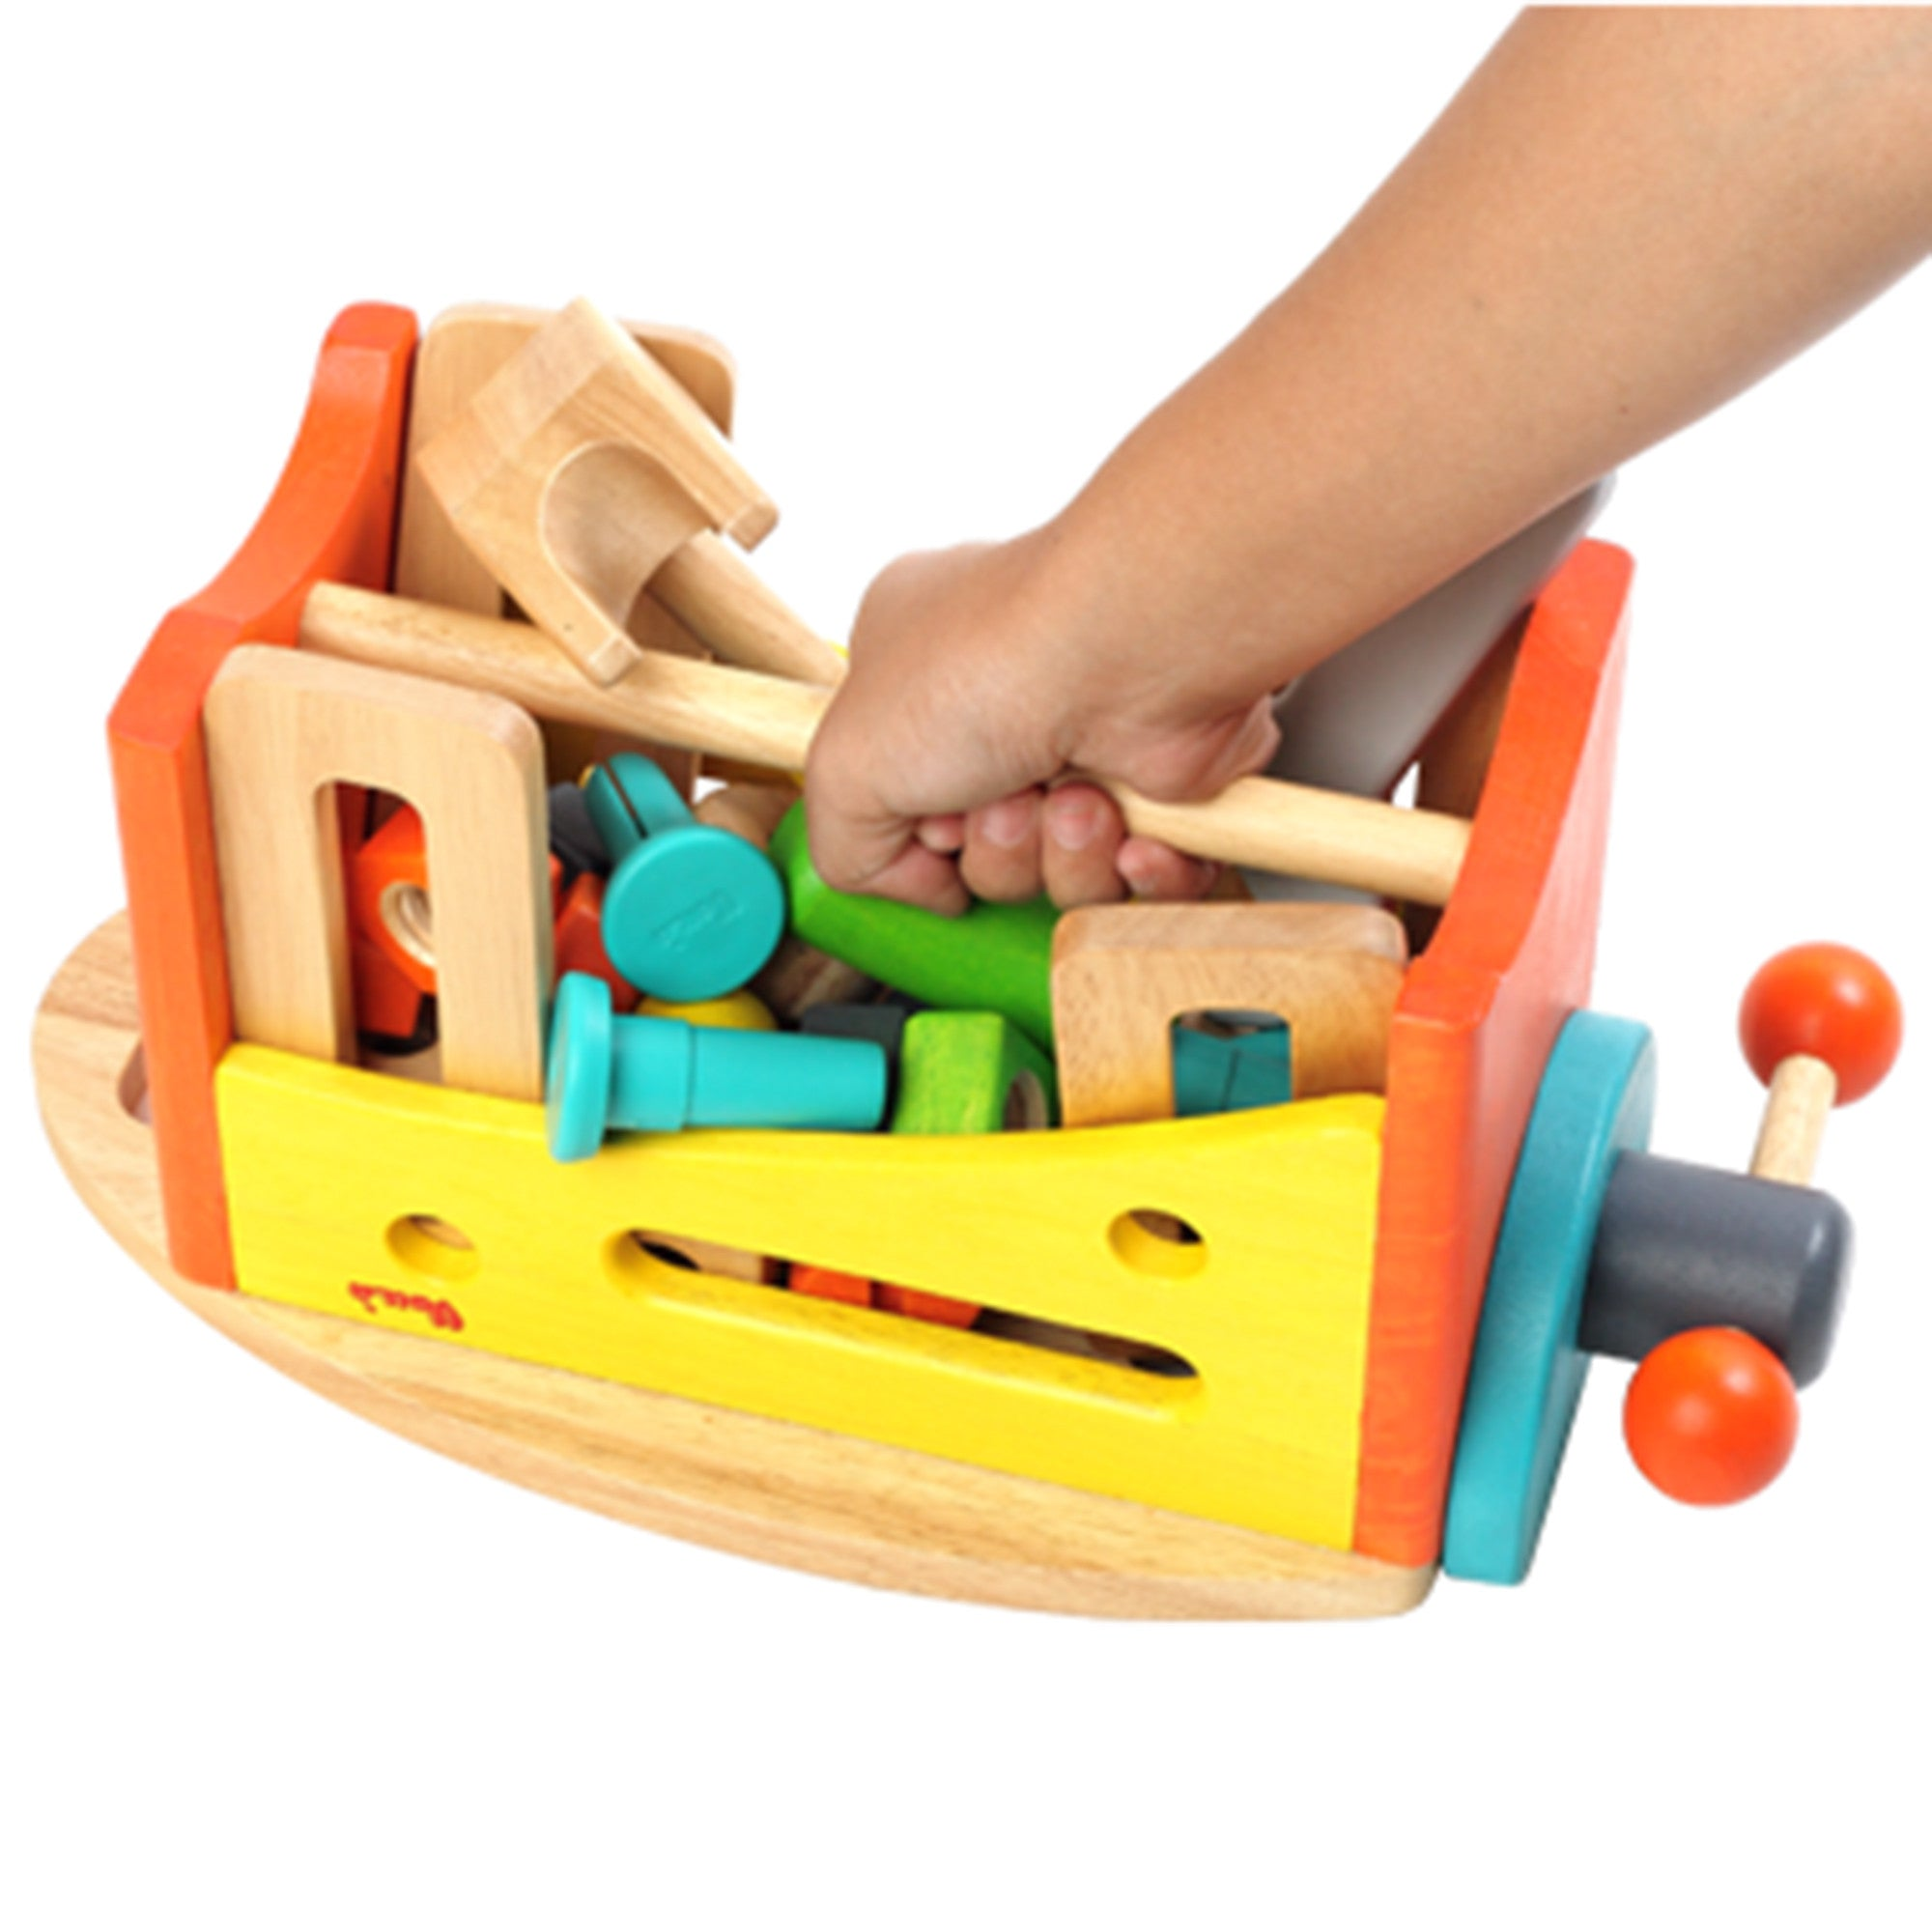 Wooden Toy Tool Set Tool Kit   - Voila - Little Earth Nest - 2